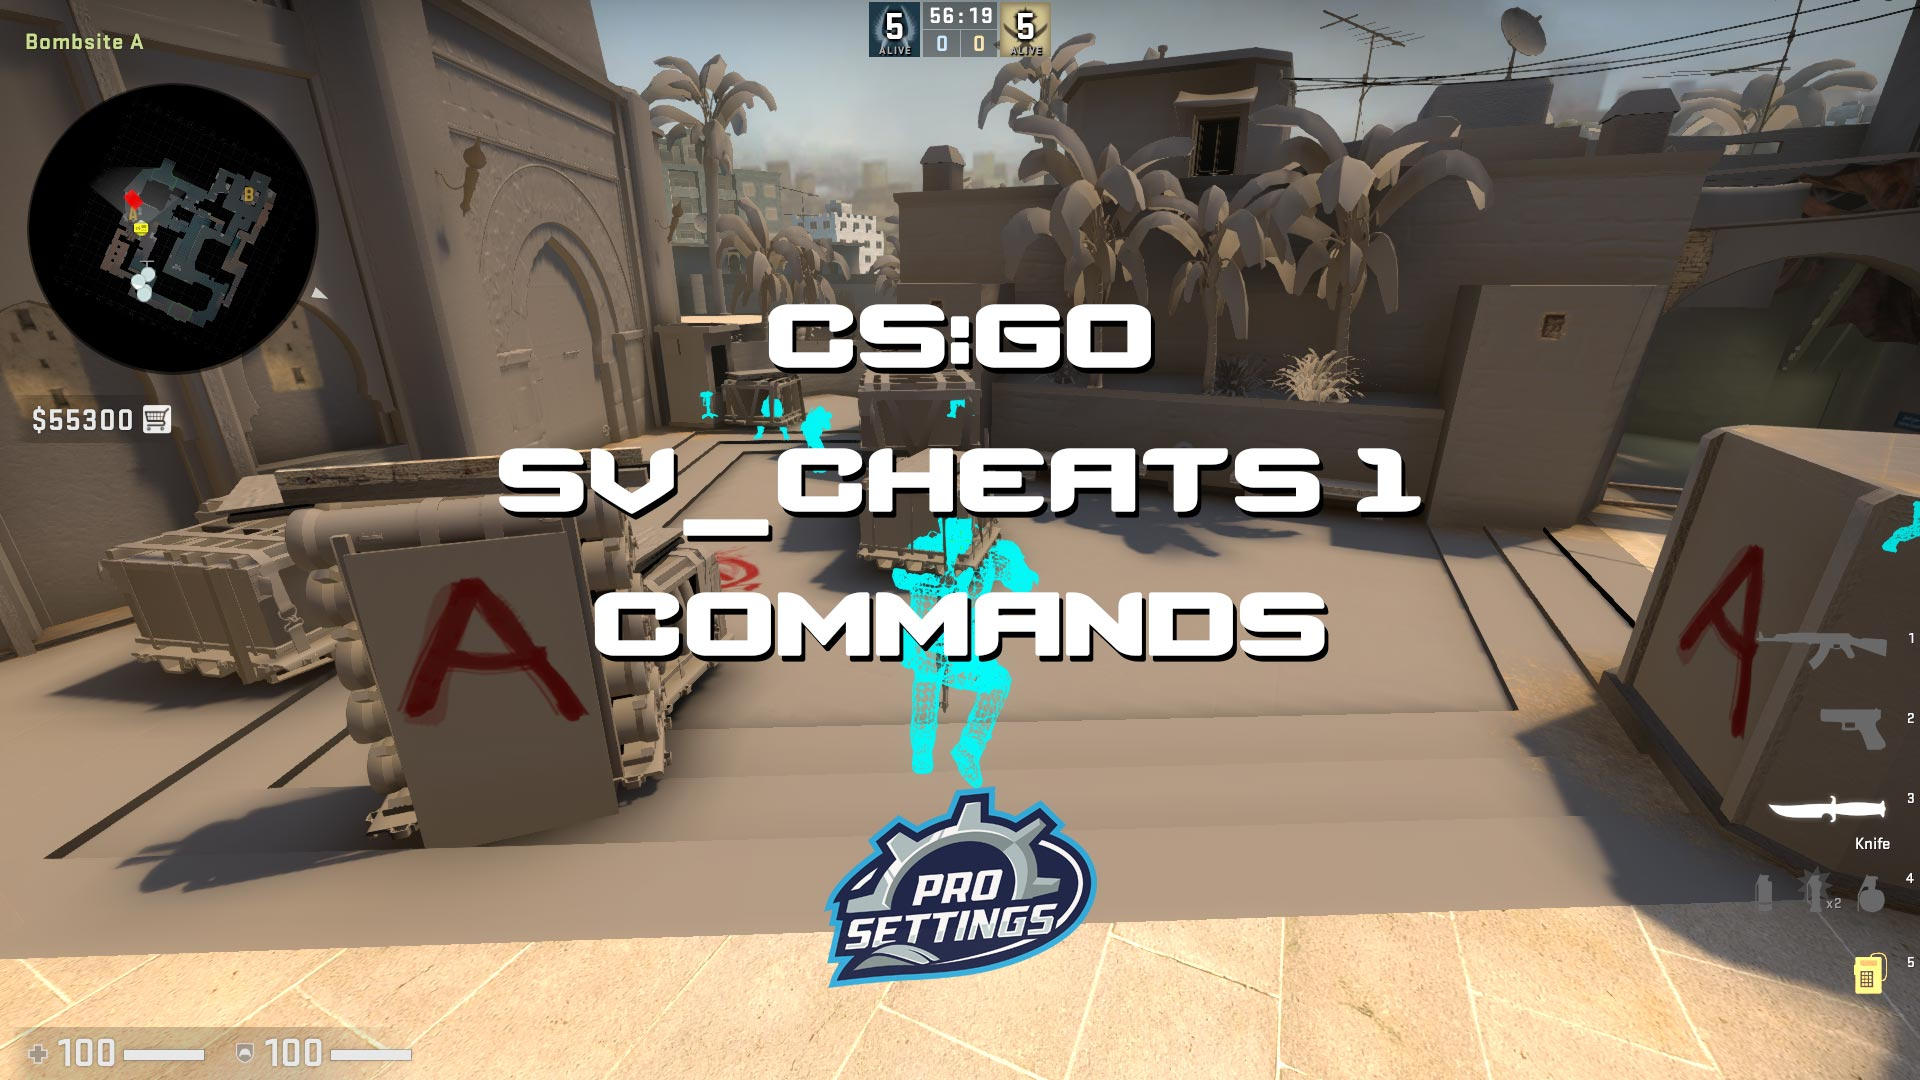 CS:GO SV_Cheats 1 Console Commands Guide 2021 - Download CS:GO SV_Cheats 1 Console Commands Guide 2021 for FREE - Free Cheats for Games